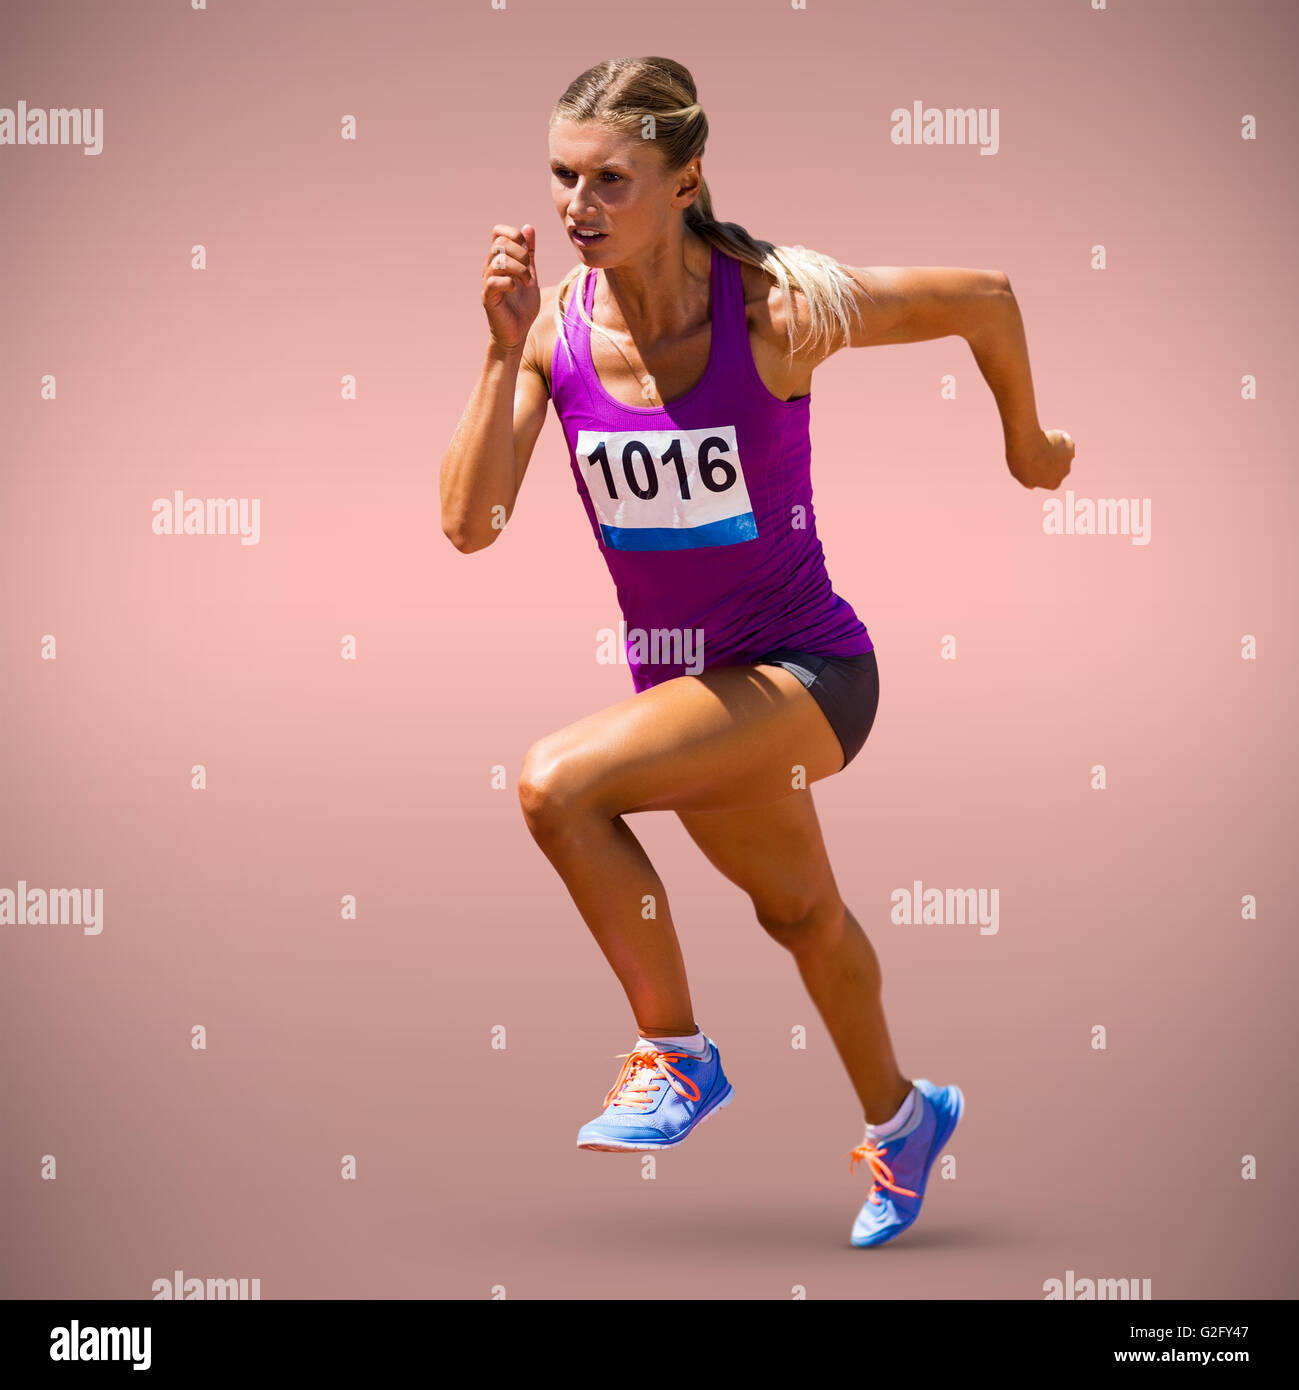 woman in running position stock photos woman in running position